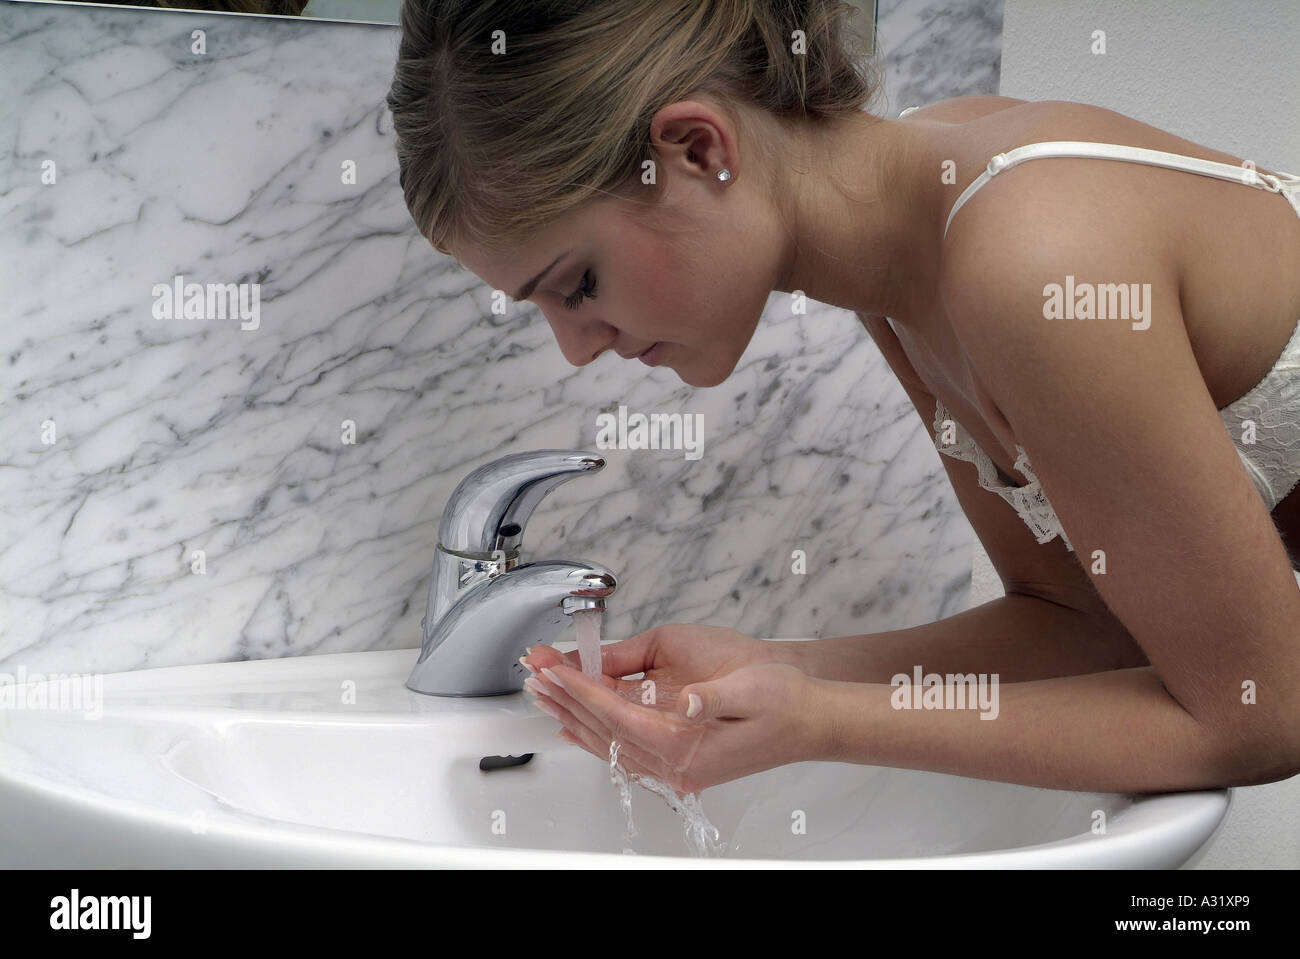 Young woman with hands cupped under running tap - Stock Image